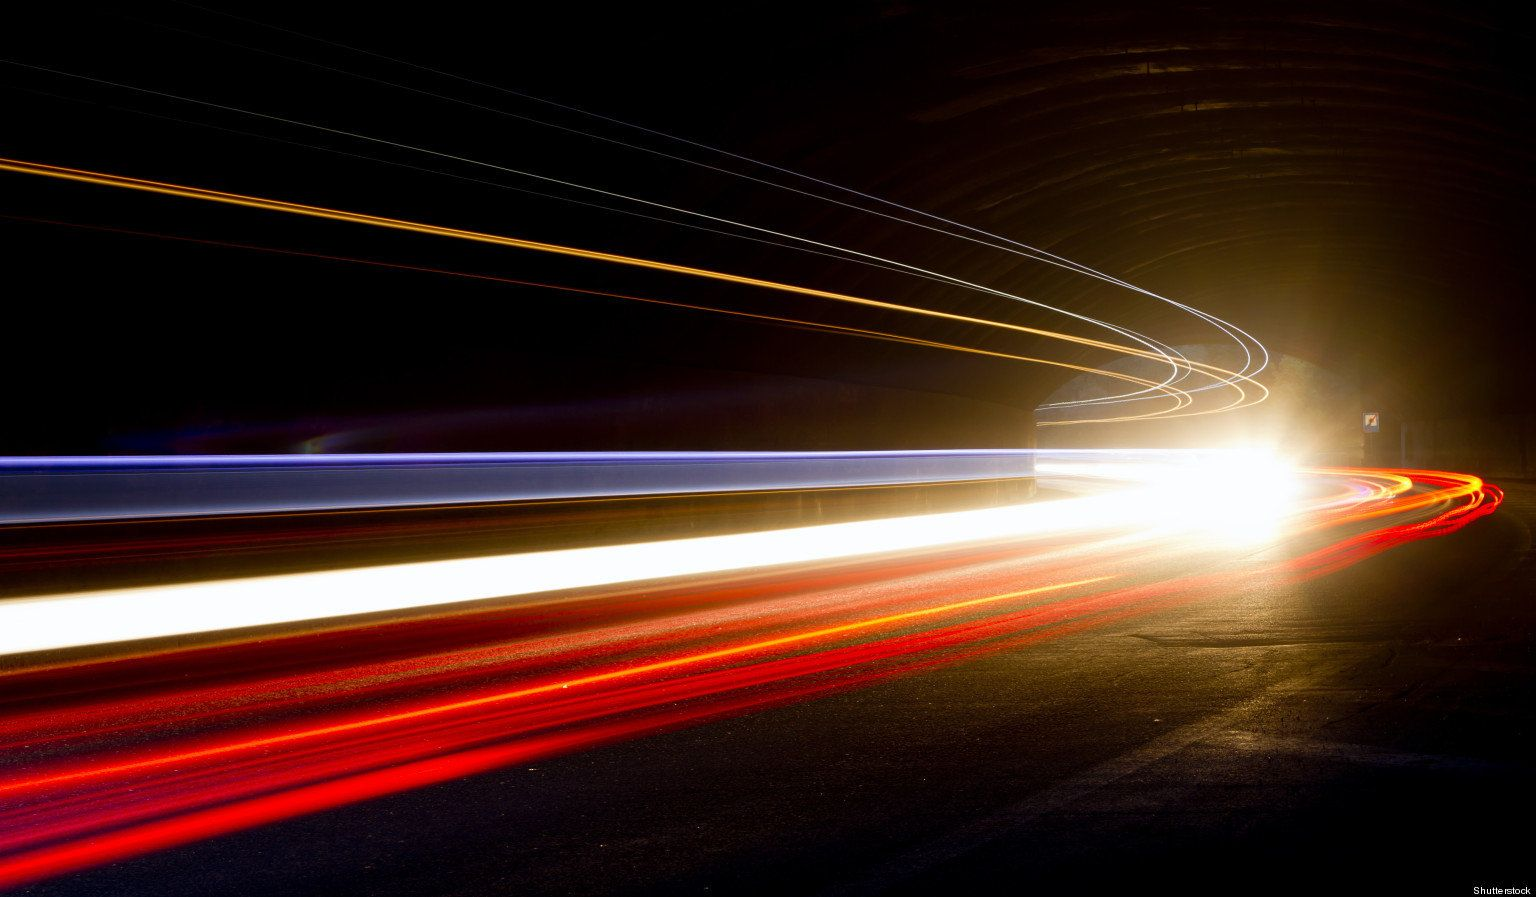 The speed of light in a vacuum is 186,282 miles per second (299,792 kilometers per second), and in theory nothing can travel faster than light.